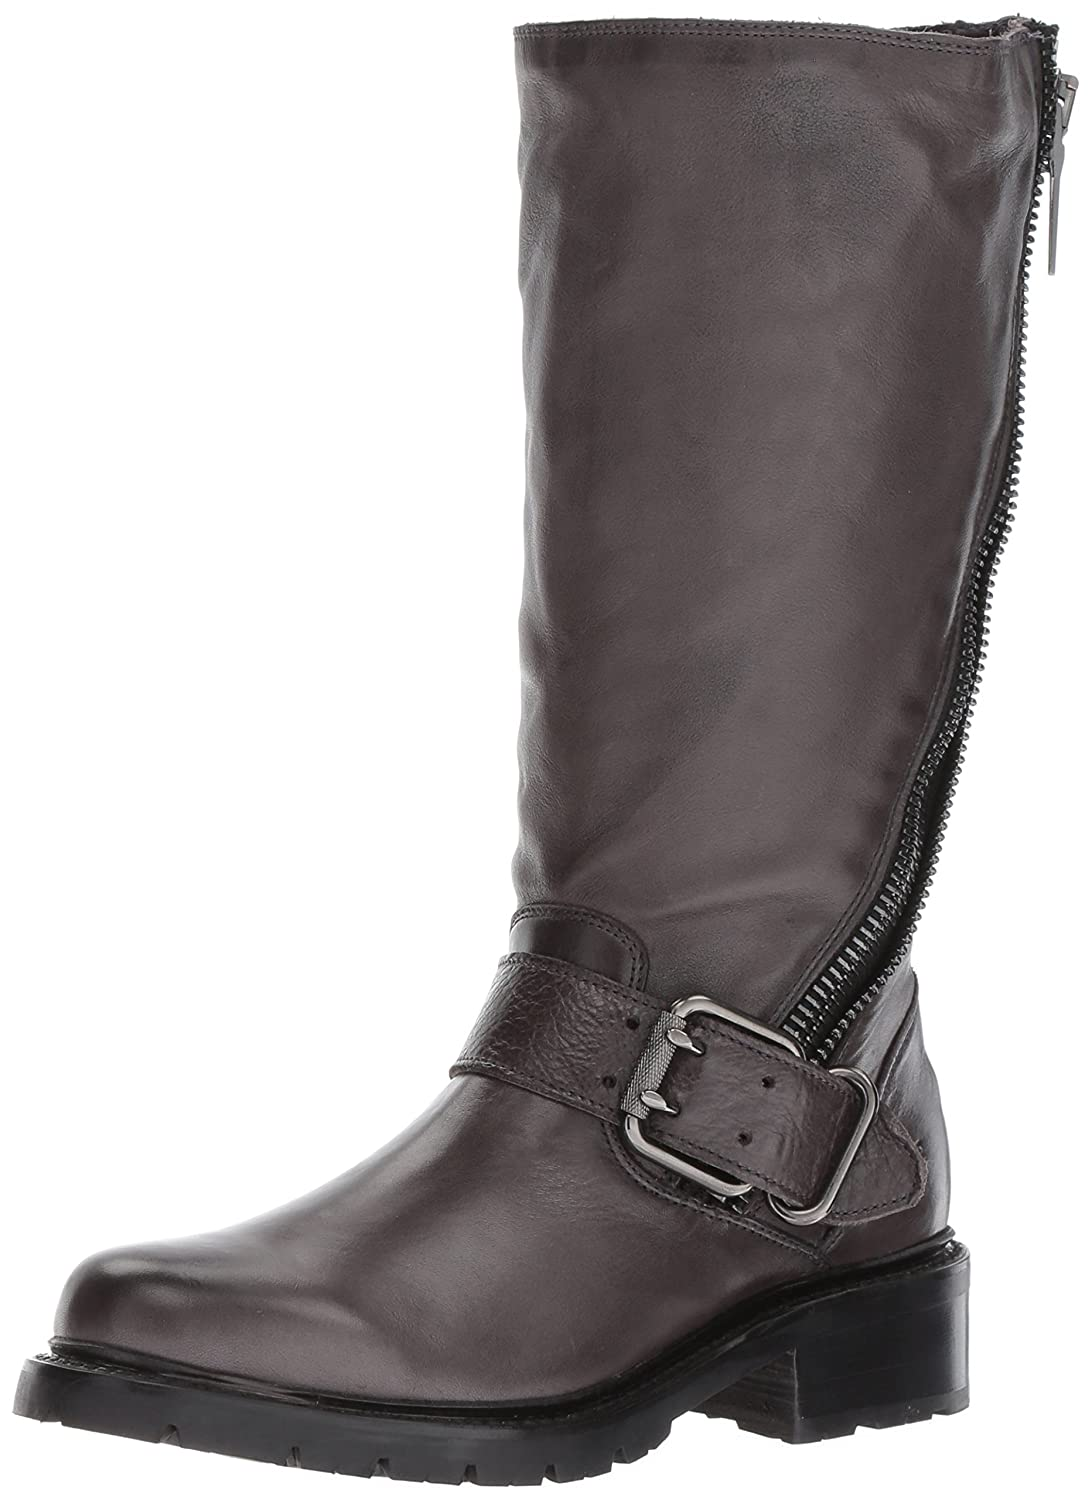 FRYE Women's Samantha Zip Tall Motorcycle Boot B01N1YPG6M 9 B(M) US|Charcoal Polished Soft Full Grain